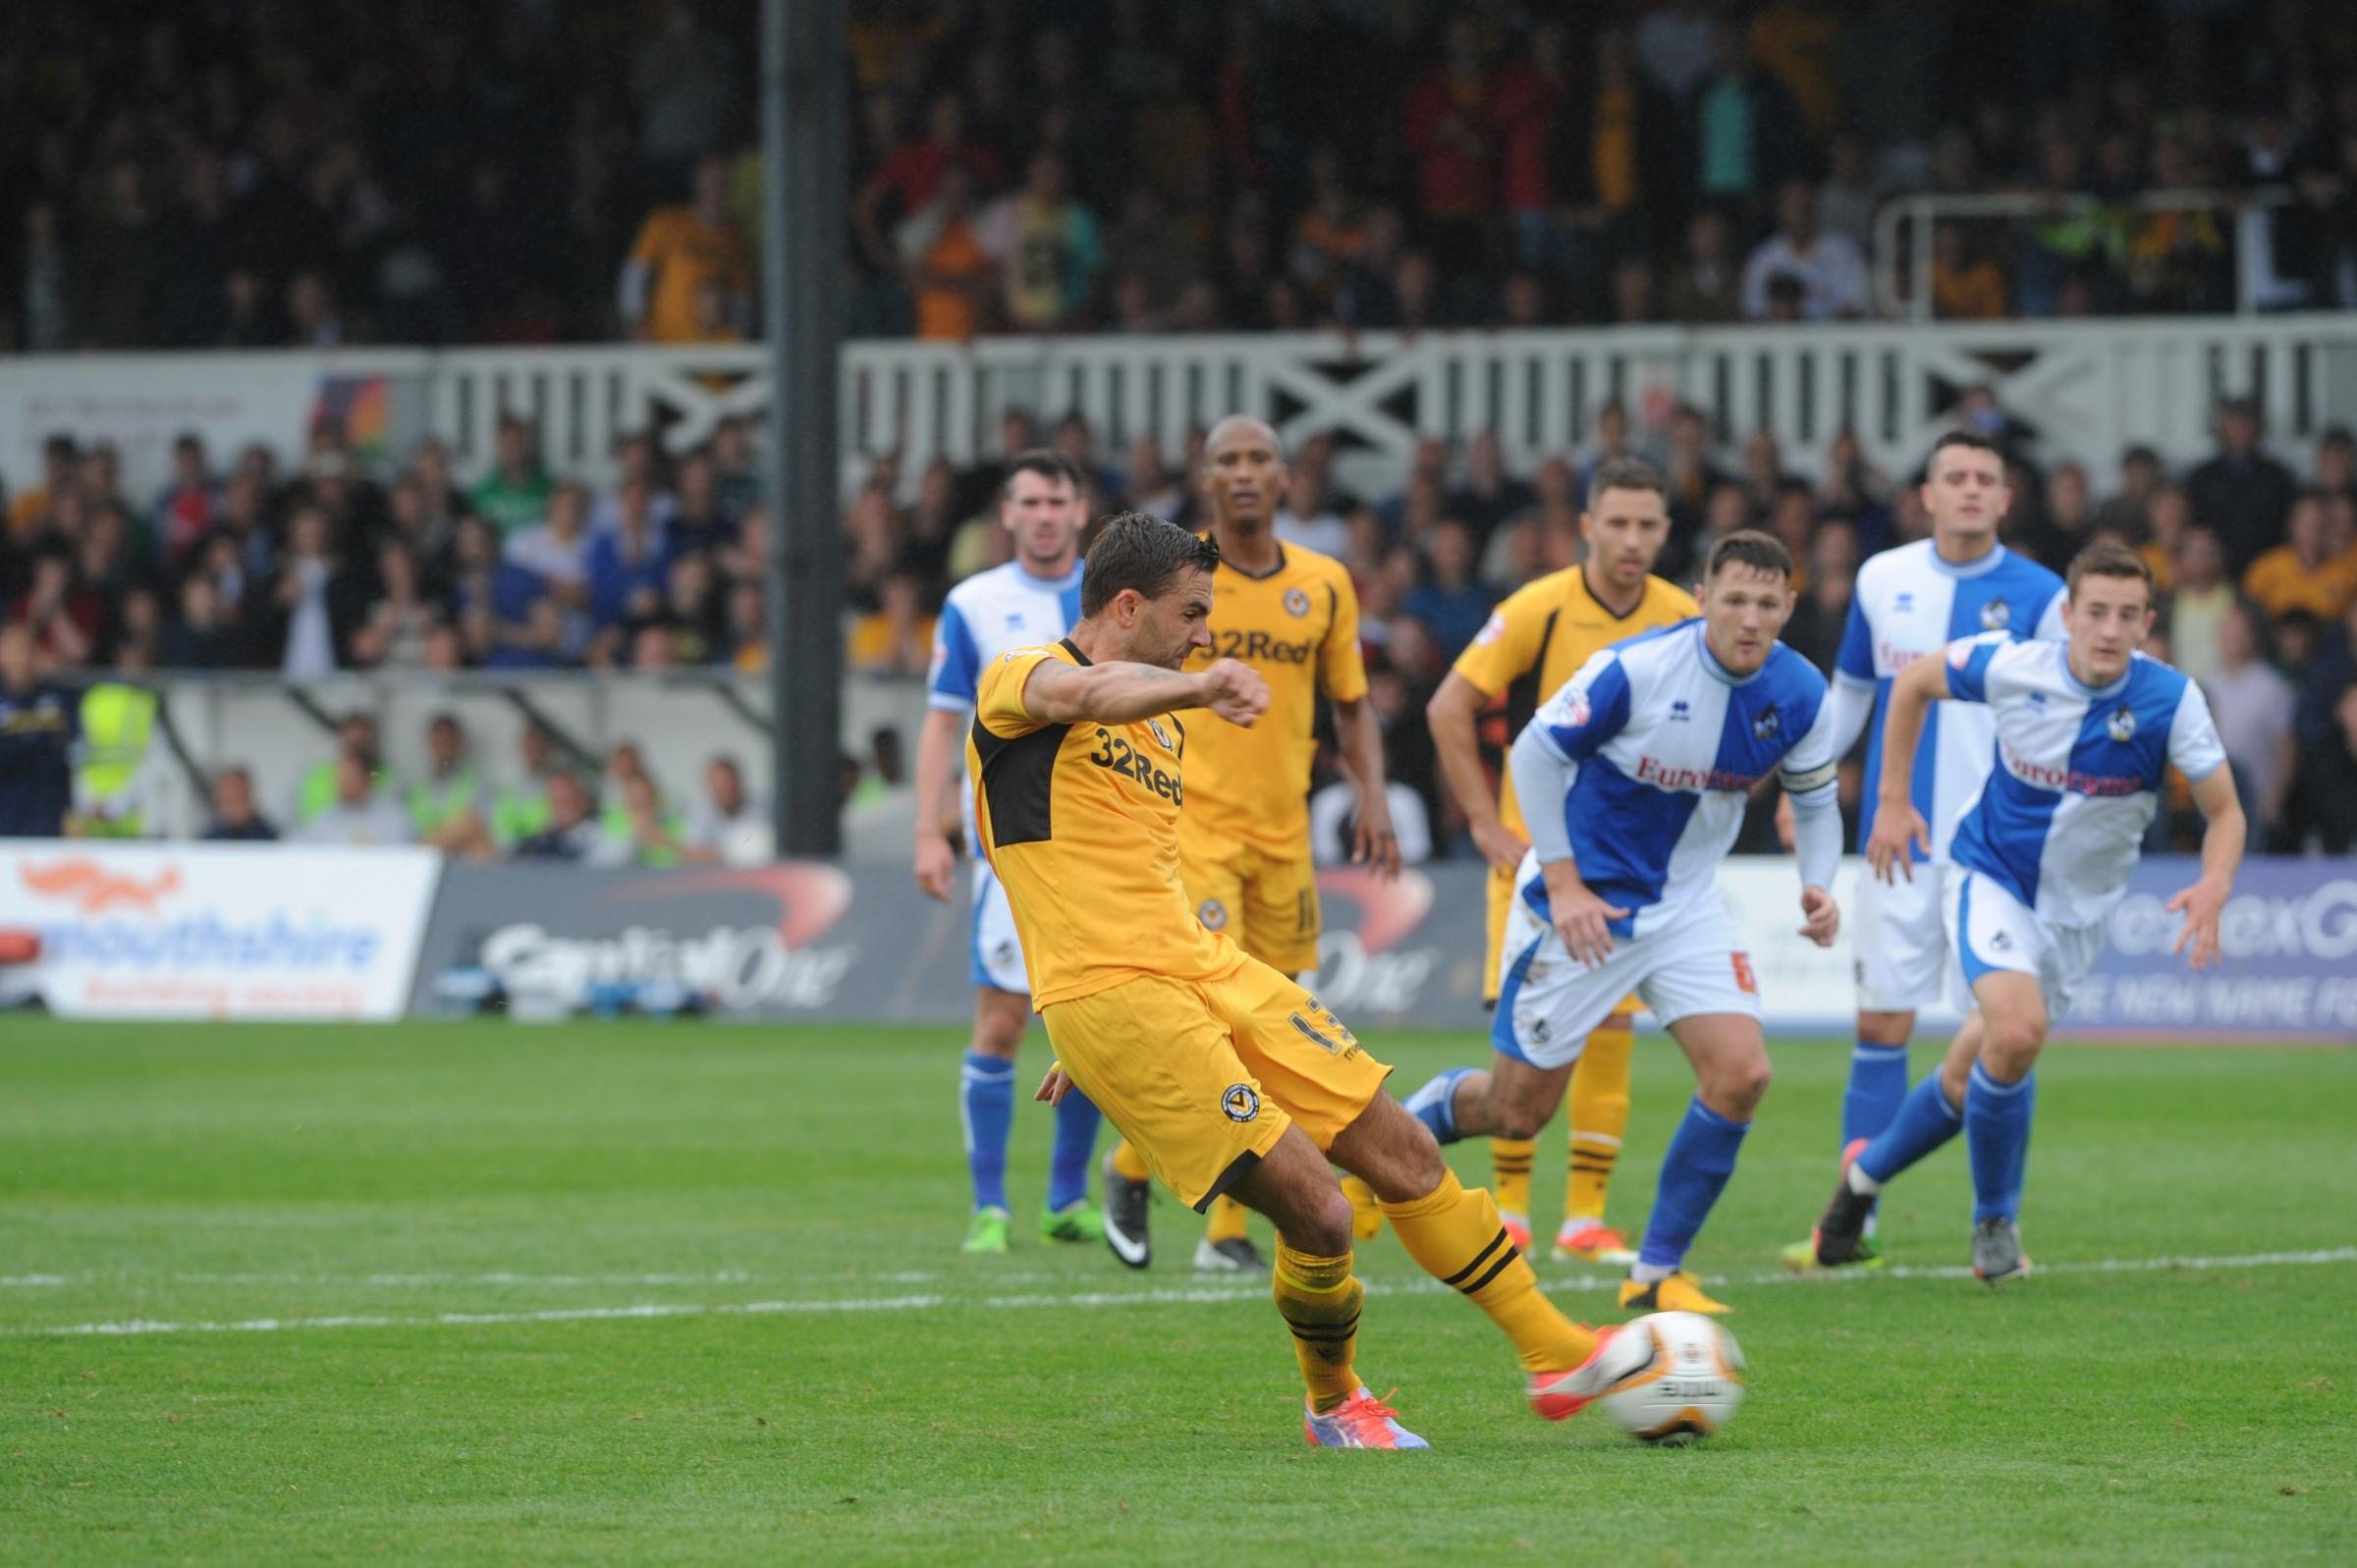 WINNER: Andy Sandell scores from the spot to beat his former club Bristol Rovers at Rodney Parade in Augu